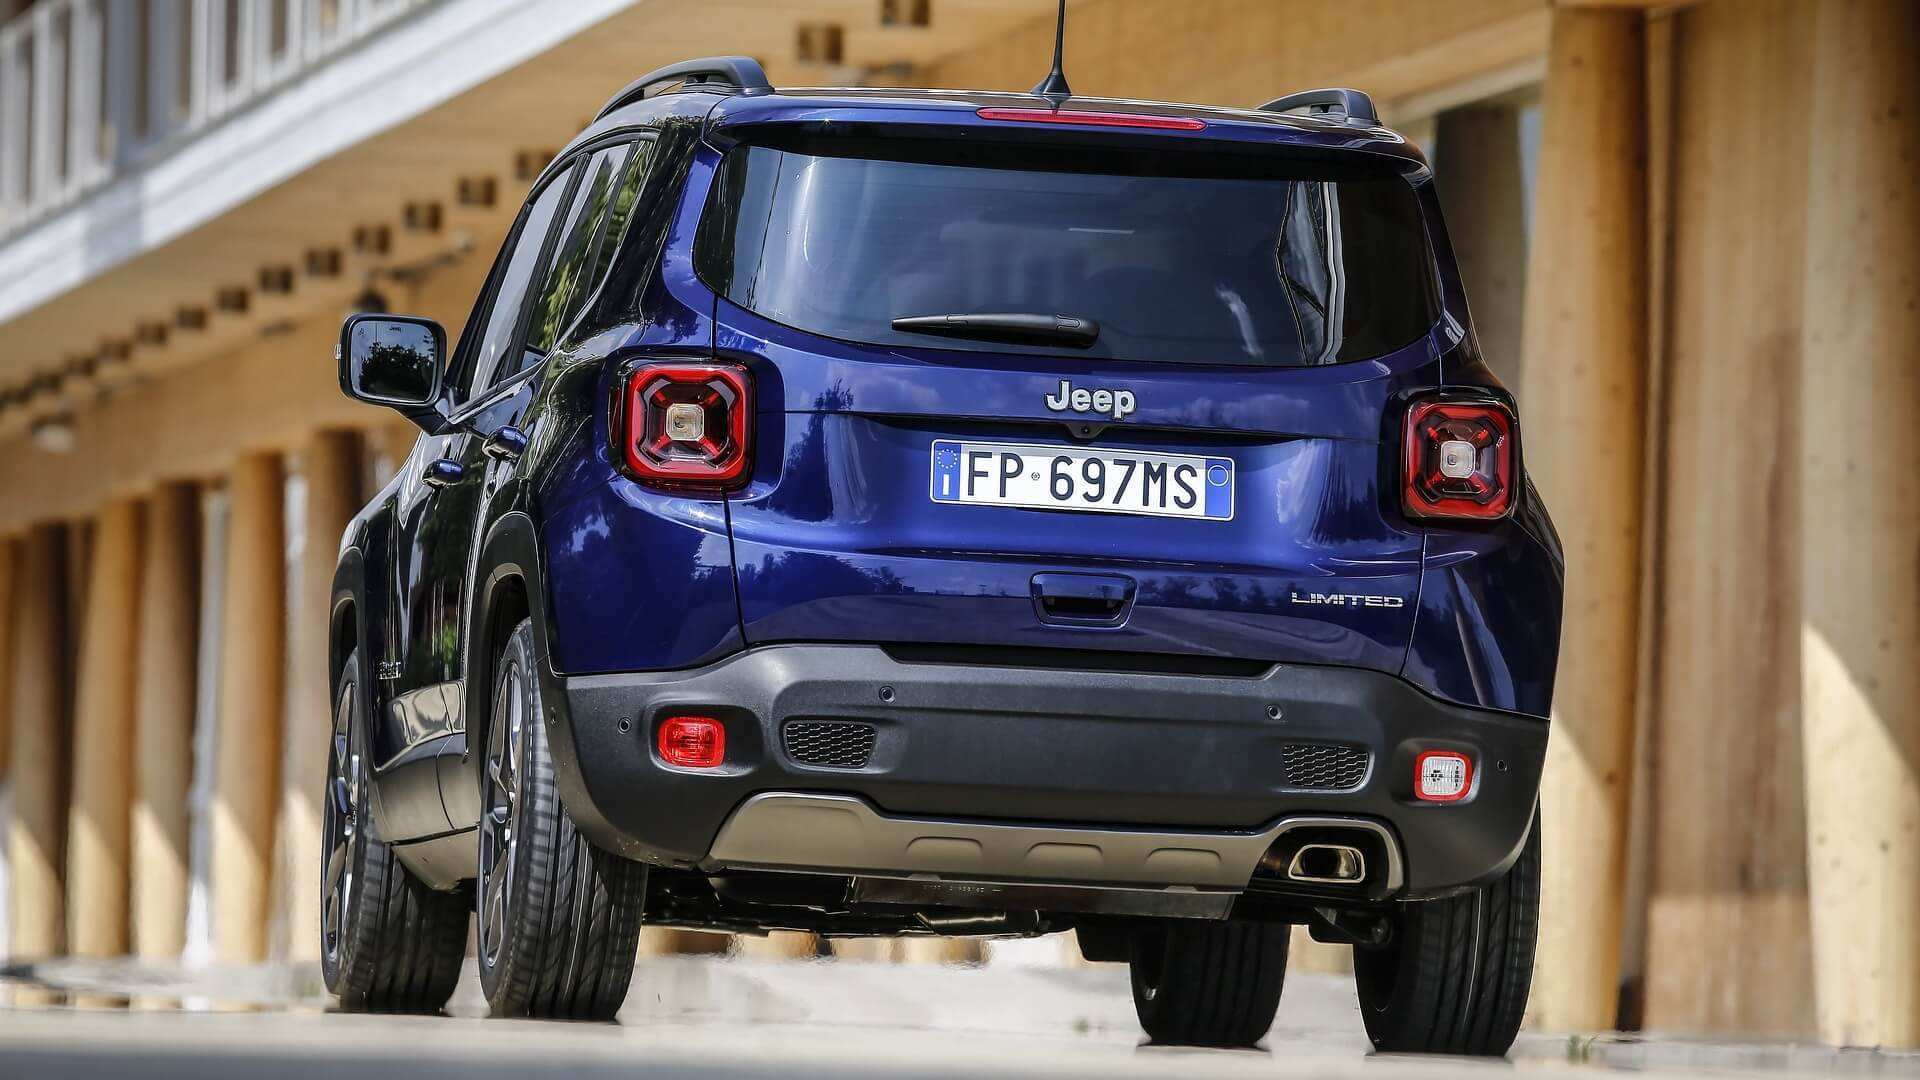 59 All New 2019 Jeep Renegade Review Exterior for 2019 Jeep Renegade Review